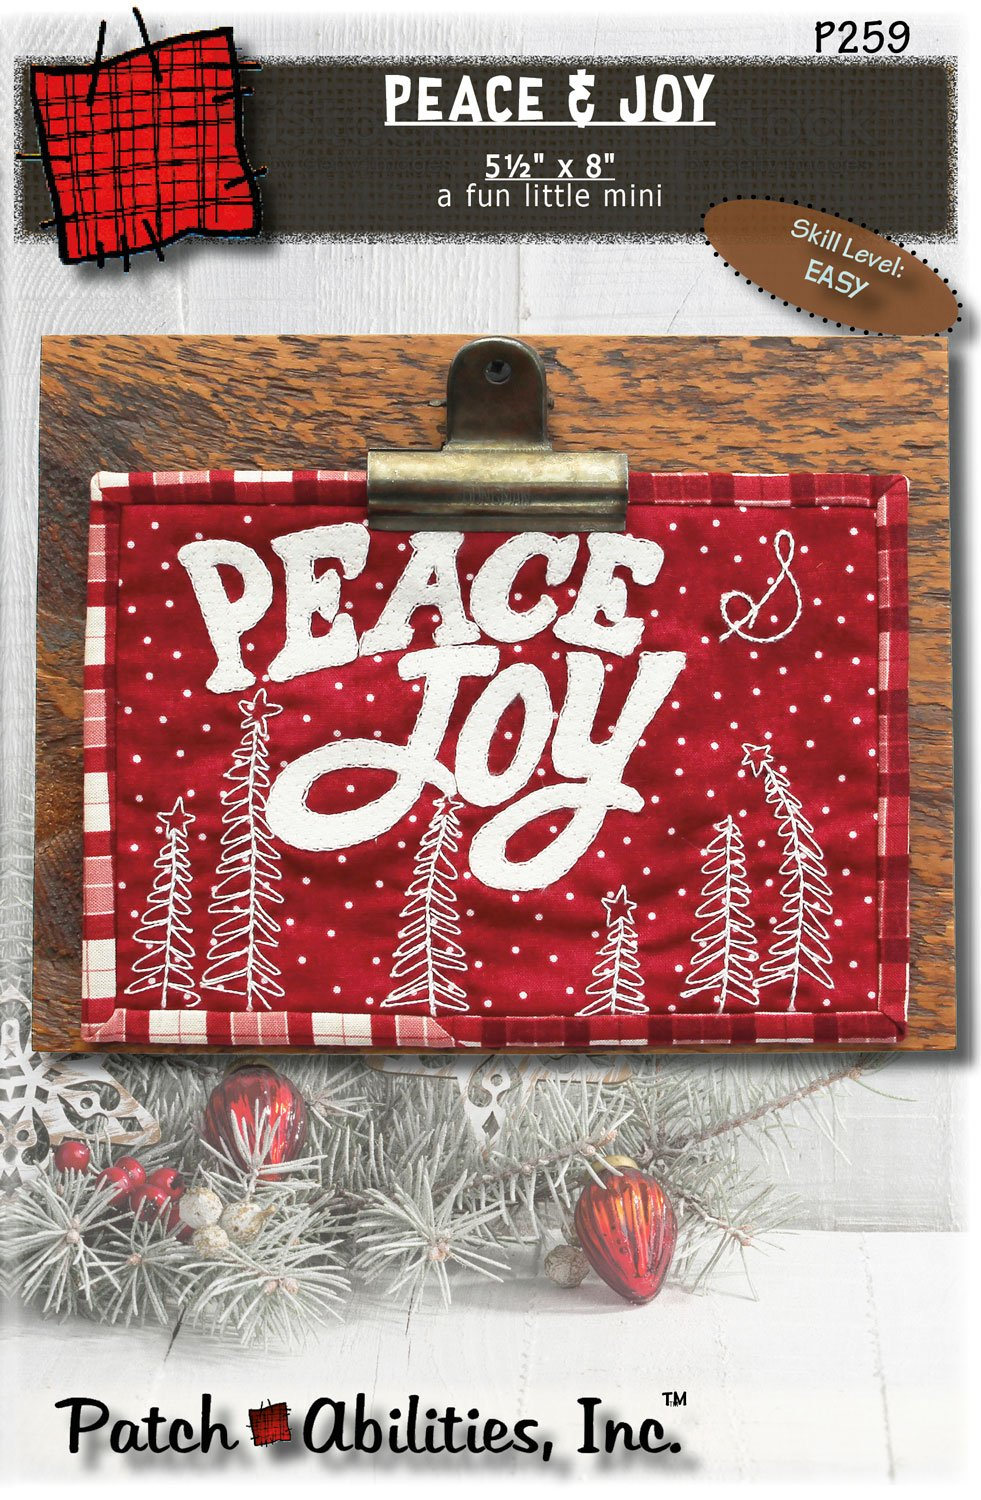 P259 Peace & Joy (a fun little mini)